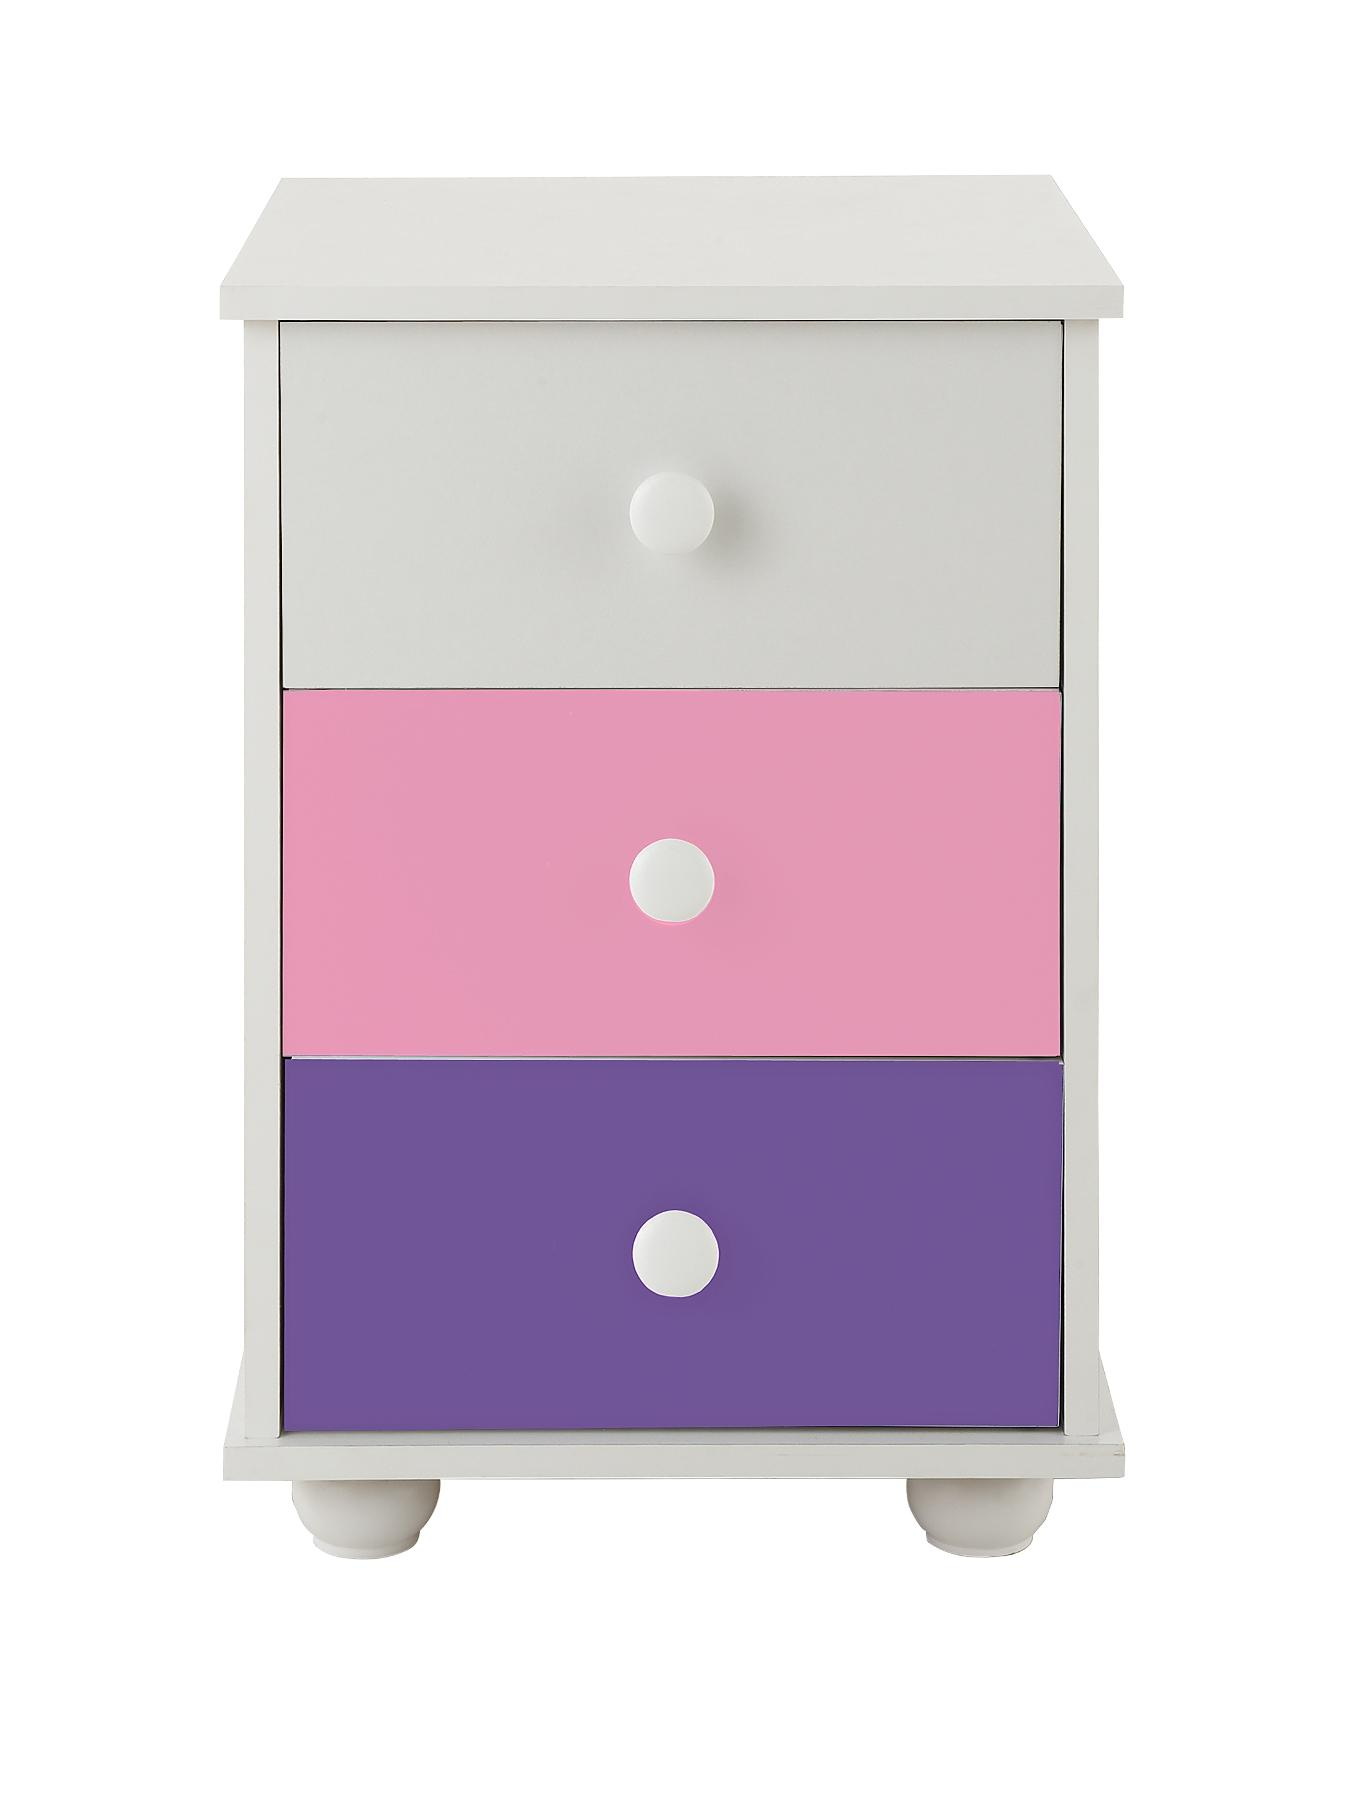 Kidspace New Metro 3-Drawer Bedside Cabinet - White, White